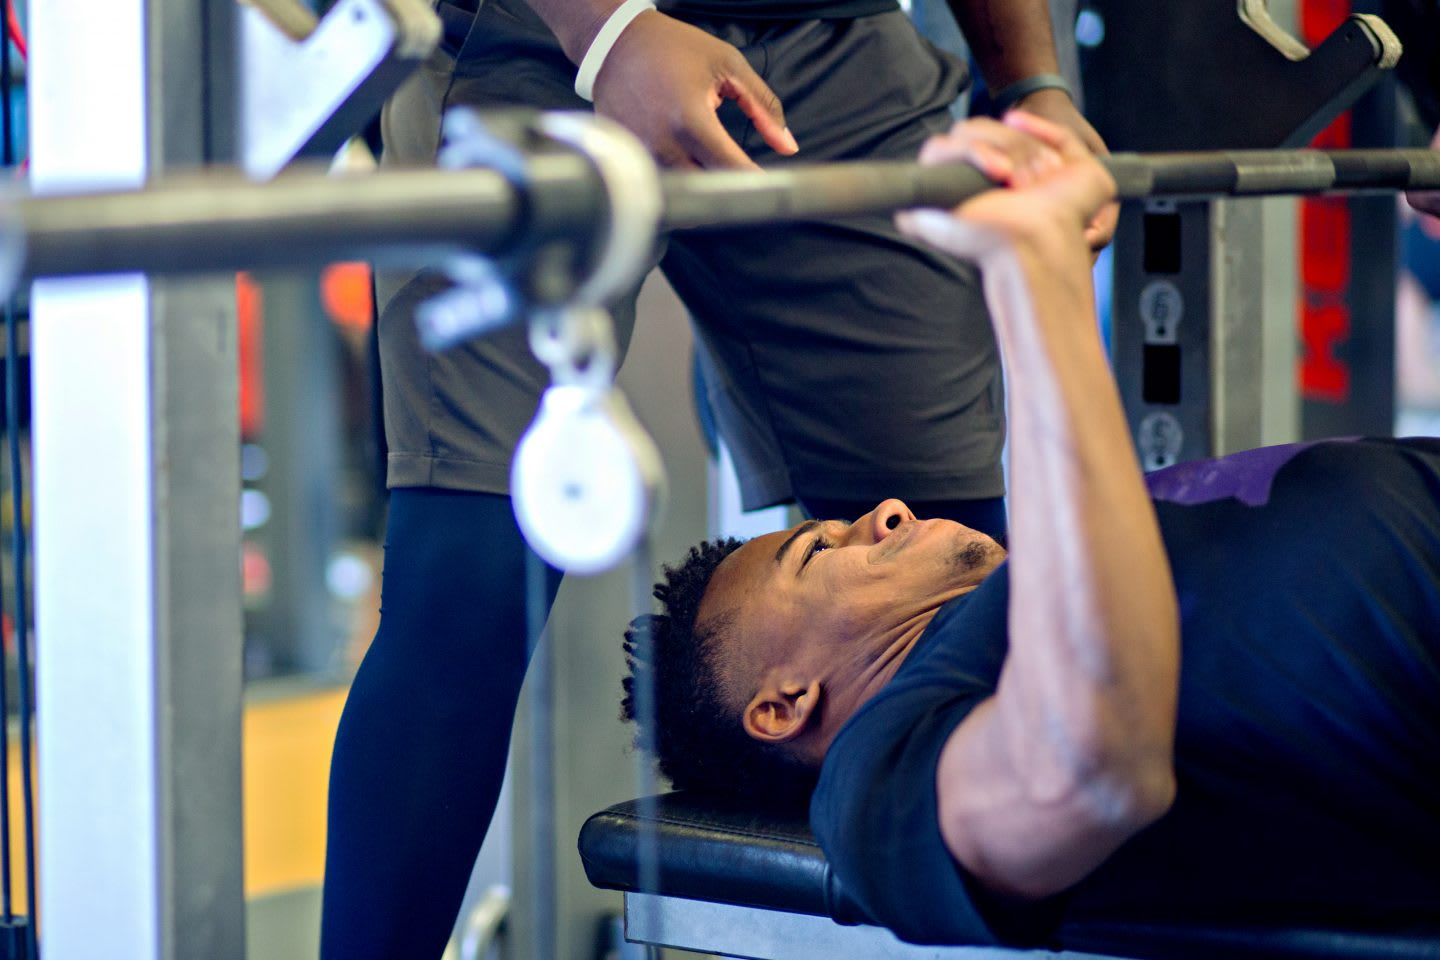 a man is weight lifting and looks concentrated and exhauseted_exos_training_weigt lifiting_persue goals